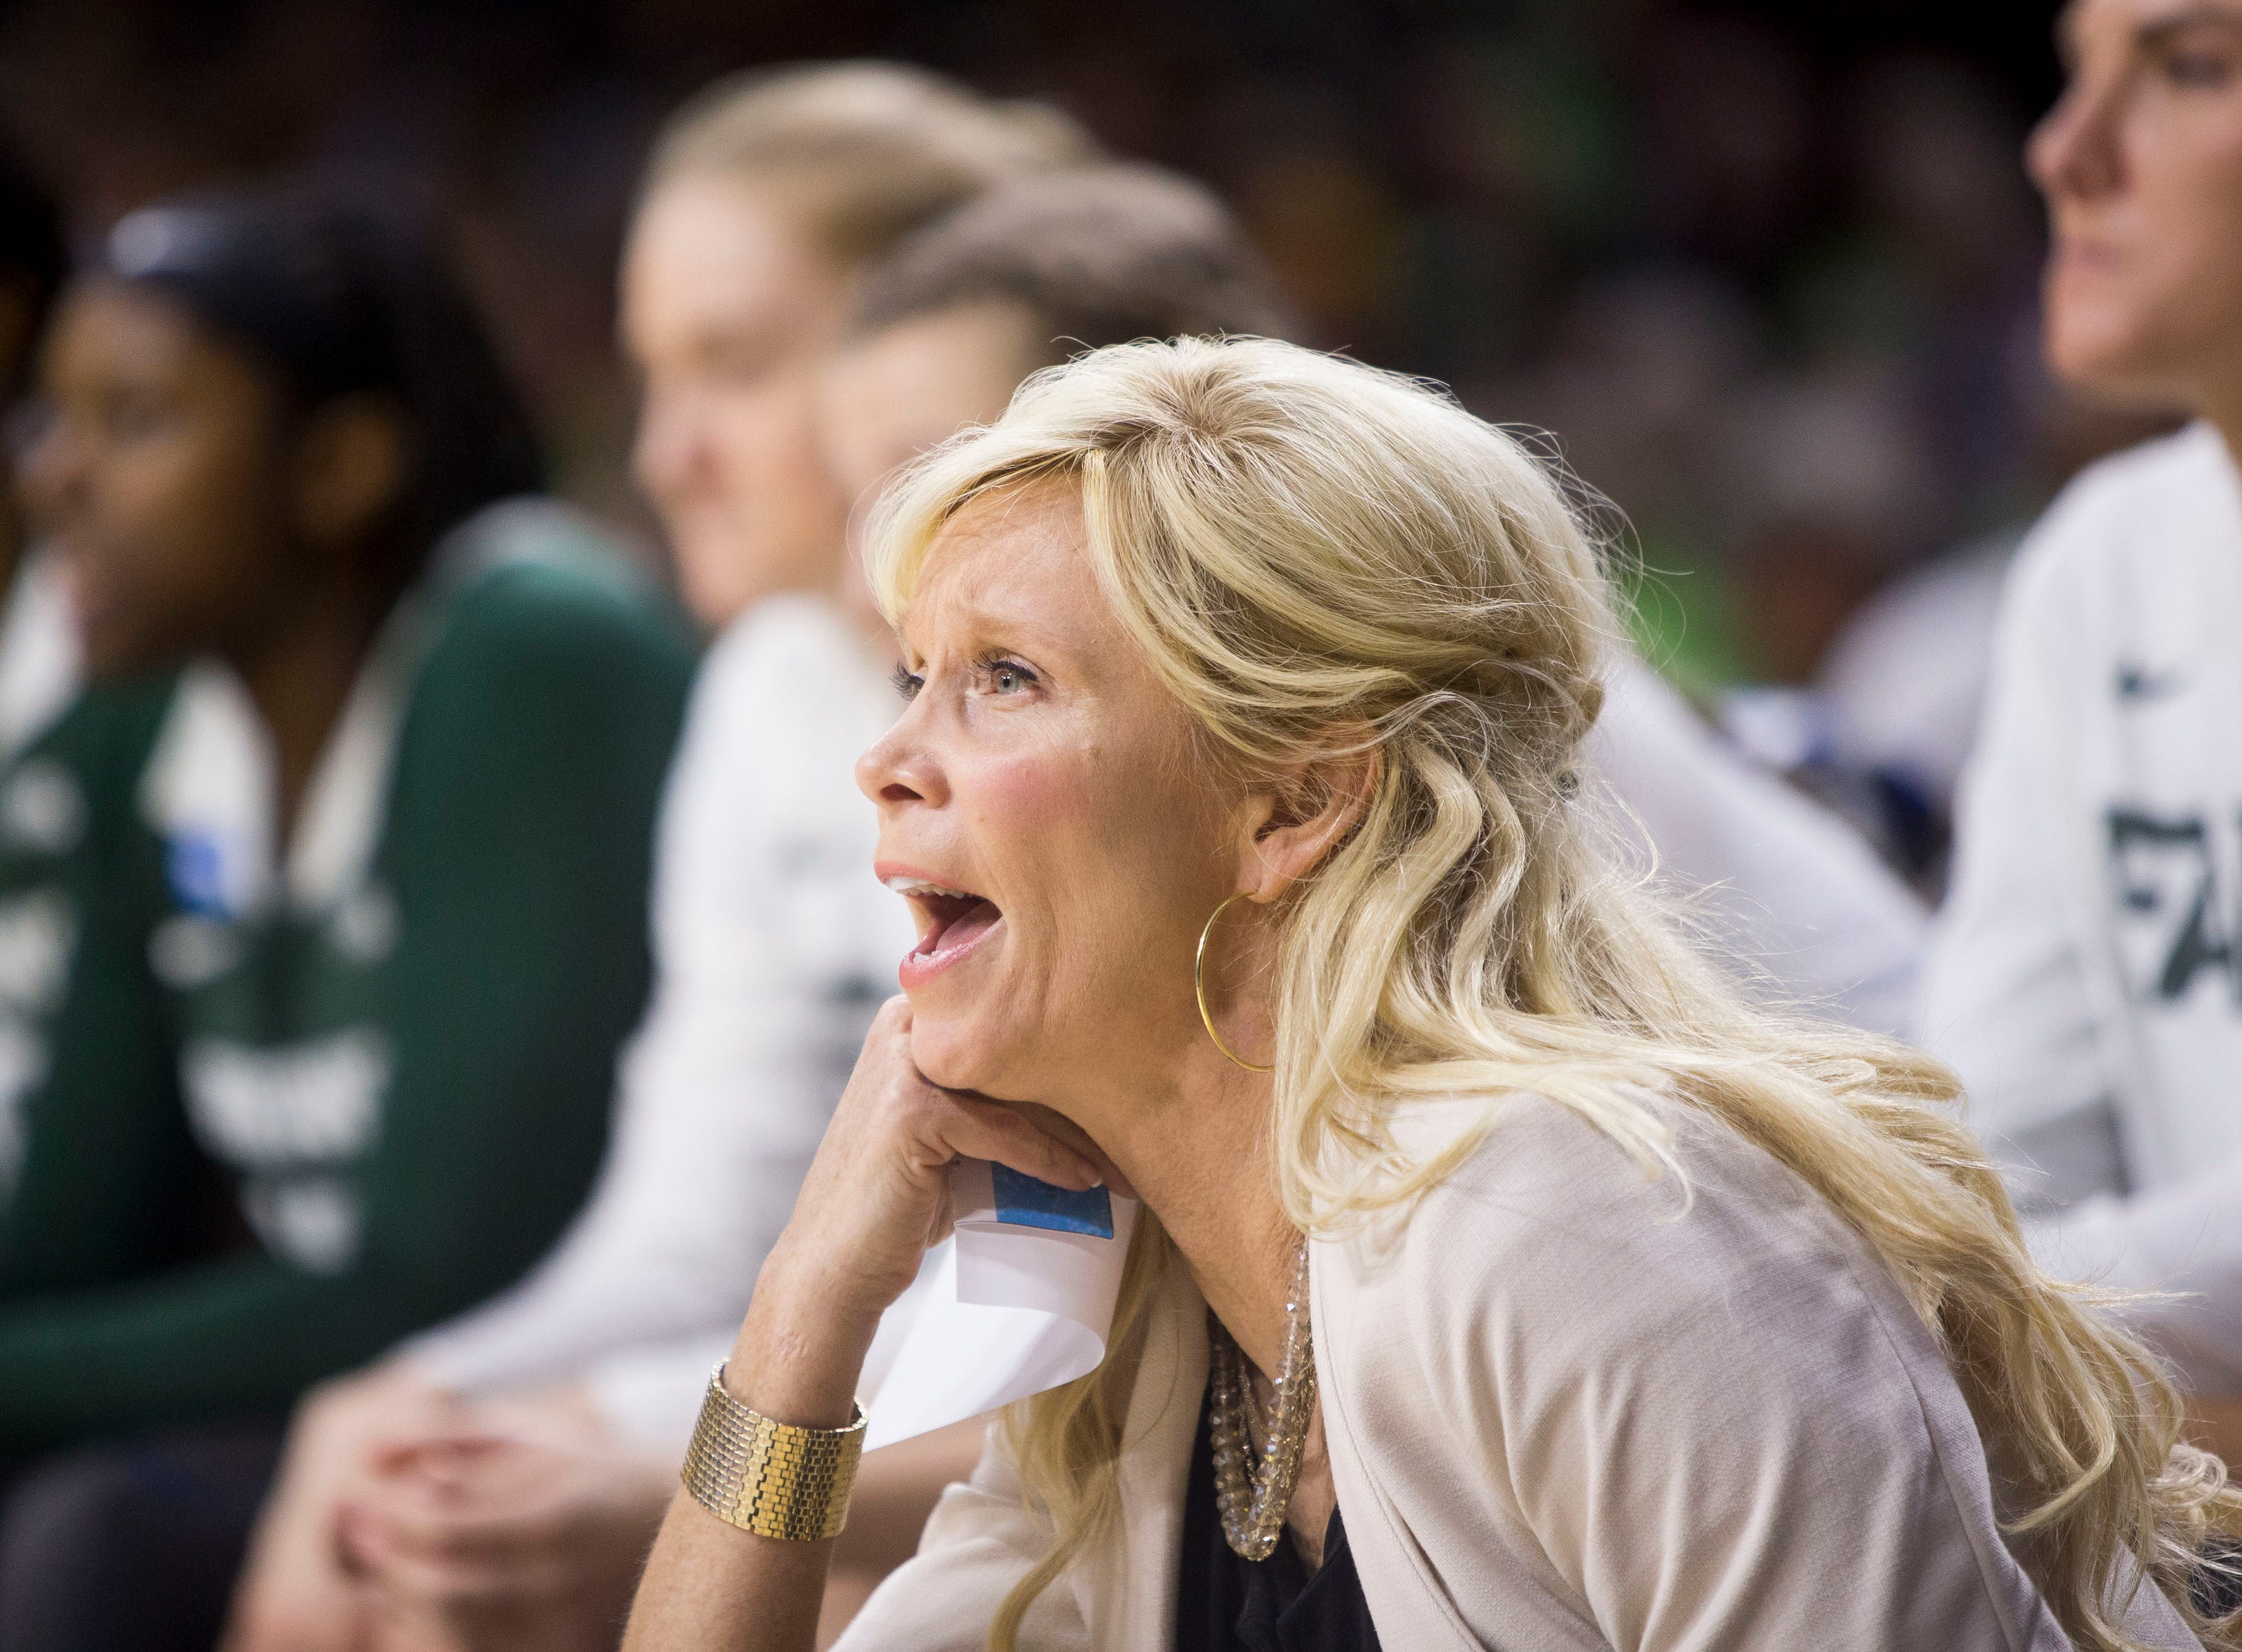 Michigan State head coach Suzy Merchant looks on during a first-round game against Central Michigan in the NCAA women's college basketball tournament in South Bend, Ind., Saturday, March 23, 2019. Michigan State won 88-87.